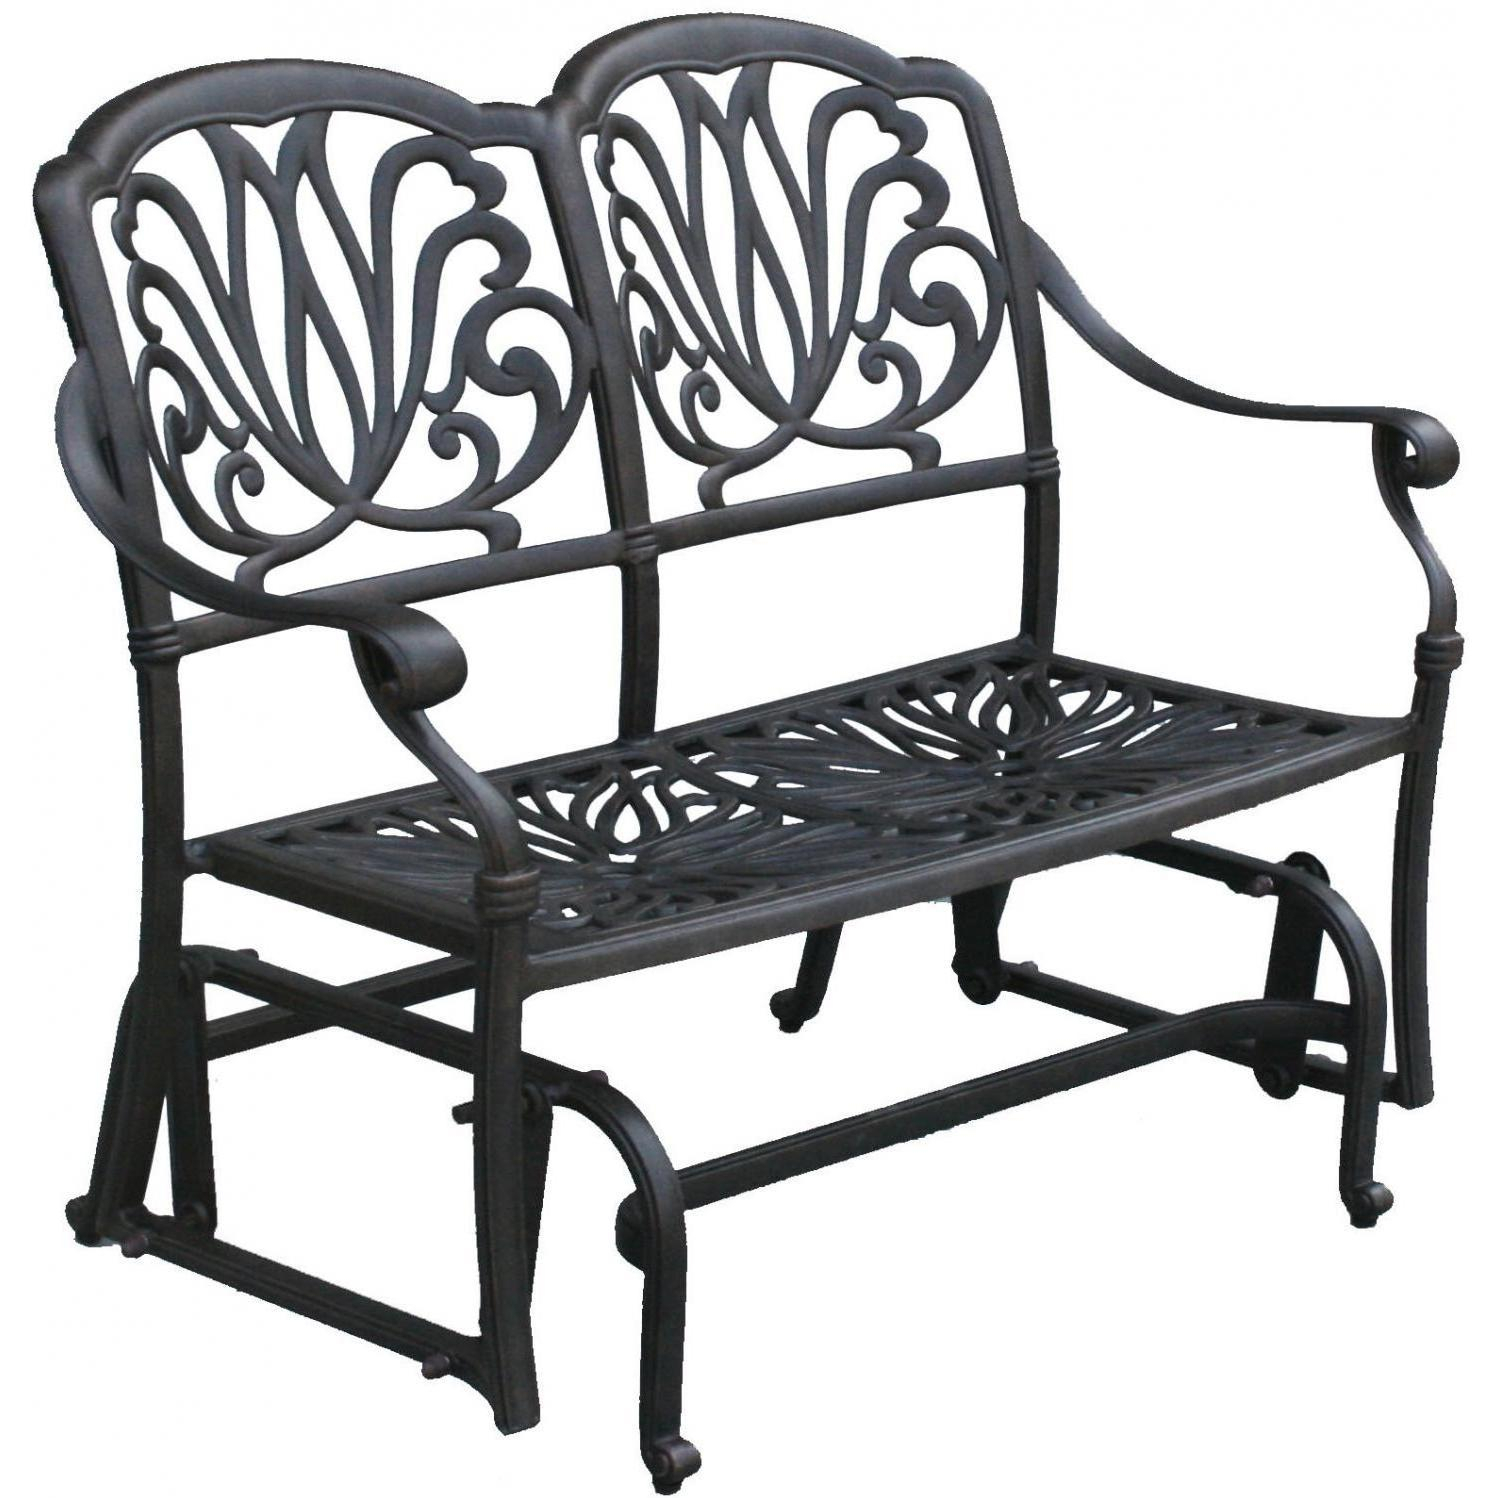 Darlee Elisabeth Cast Aluminum Patio Bench Glider | Products Within Glider Benches With Cushion (View 3 of 25)